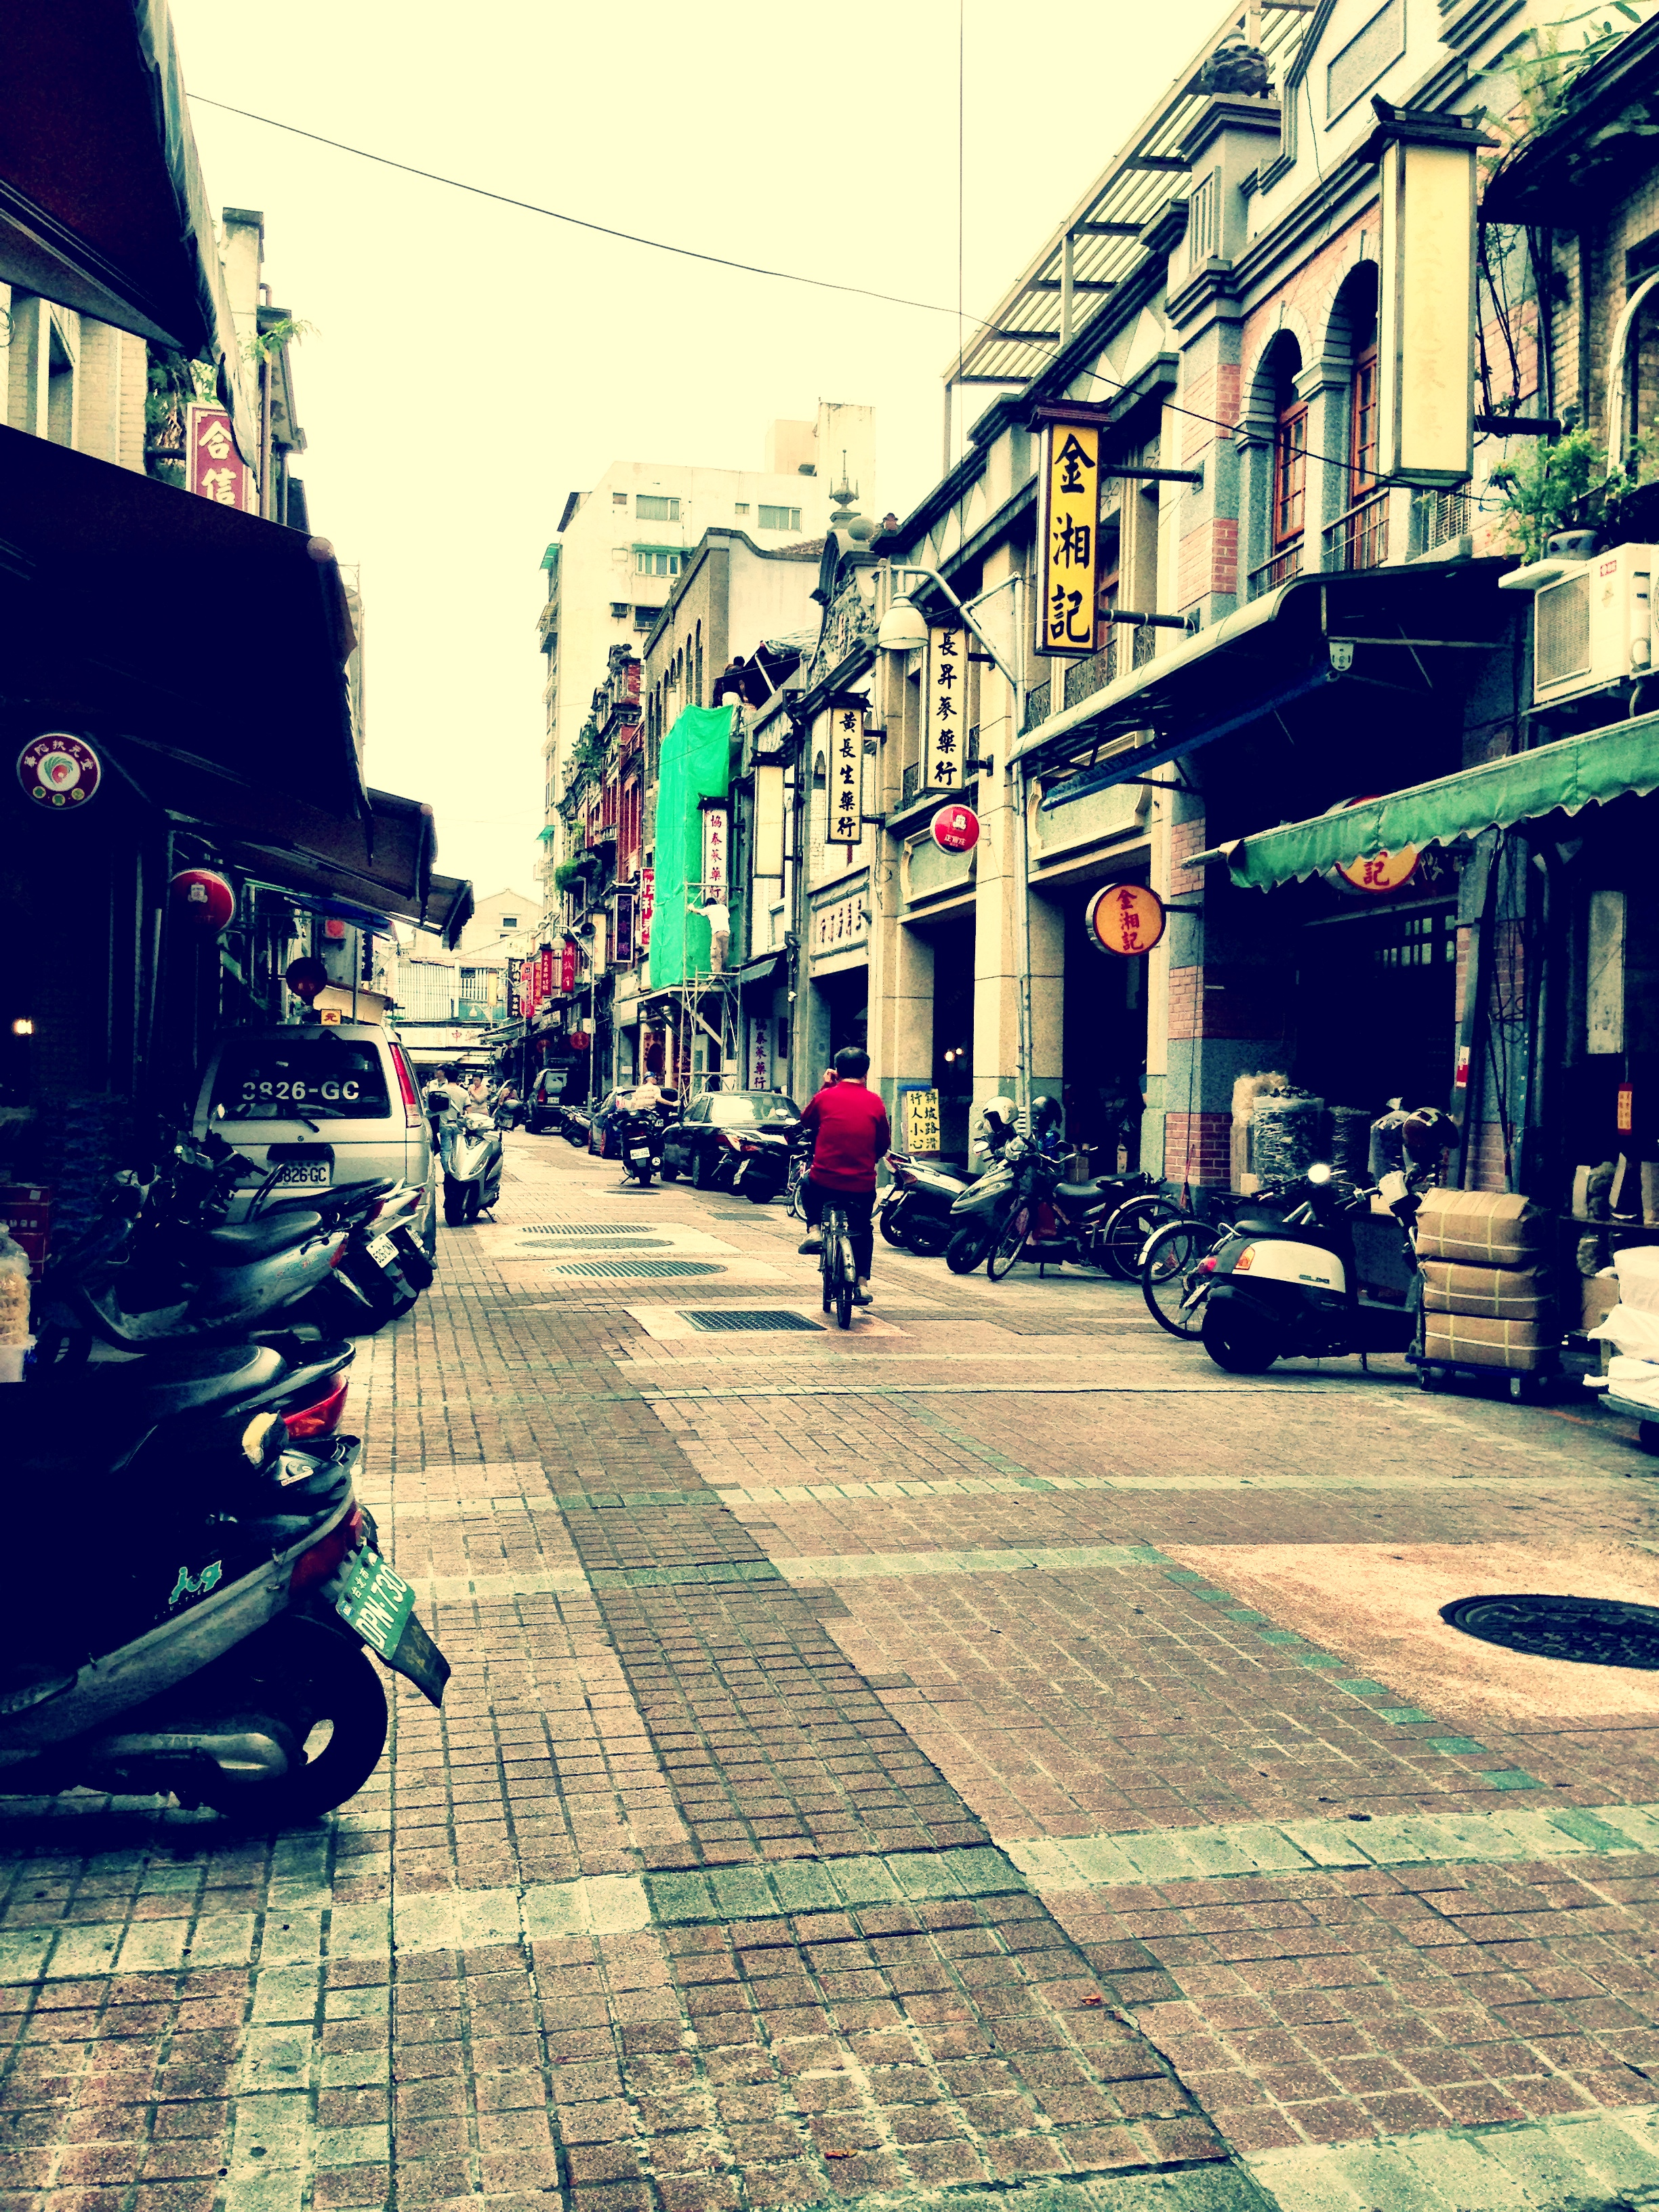 A quiet day on Dihua Street